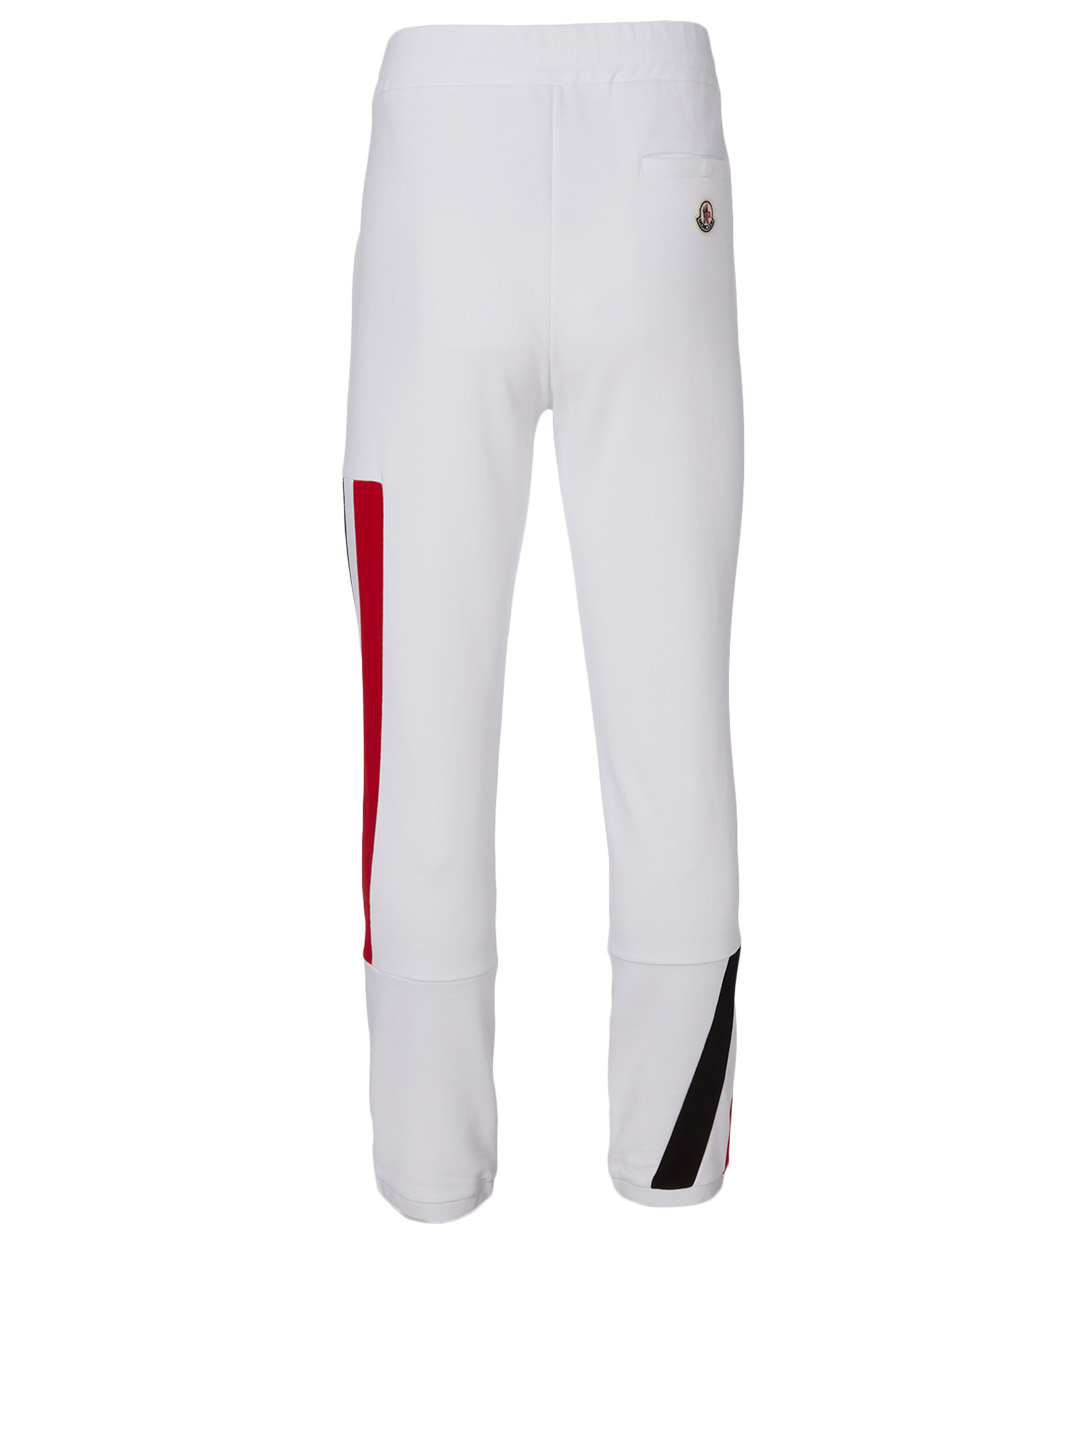 MONCLER Cotton Jogger Pants Men's White